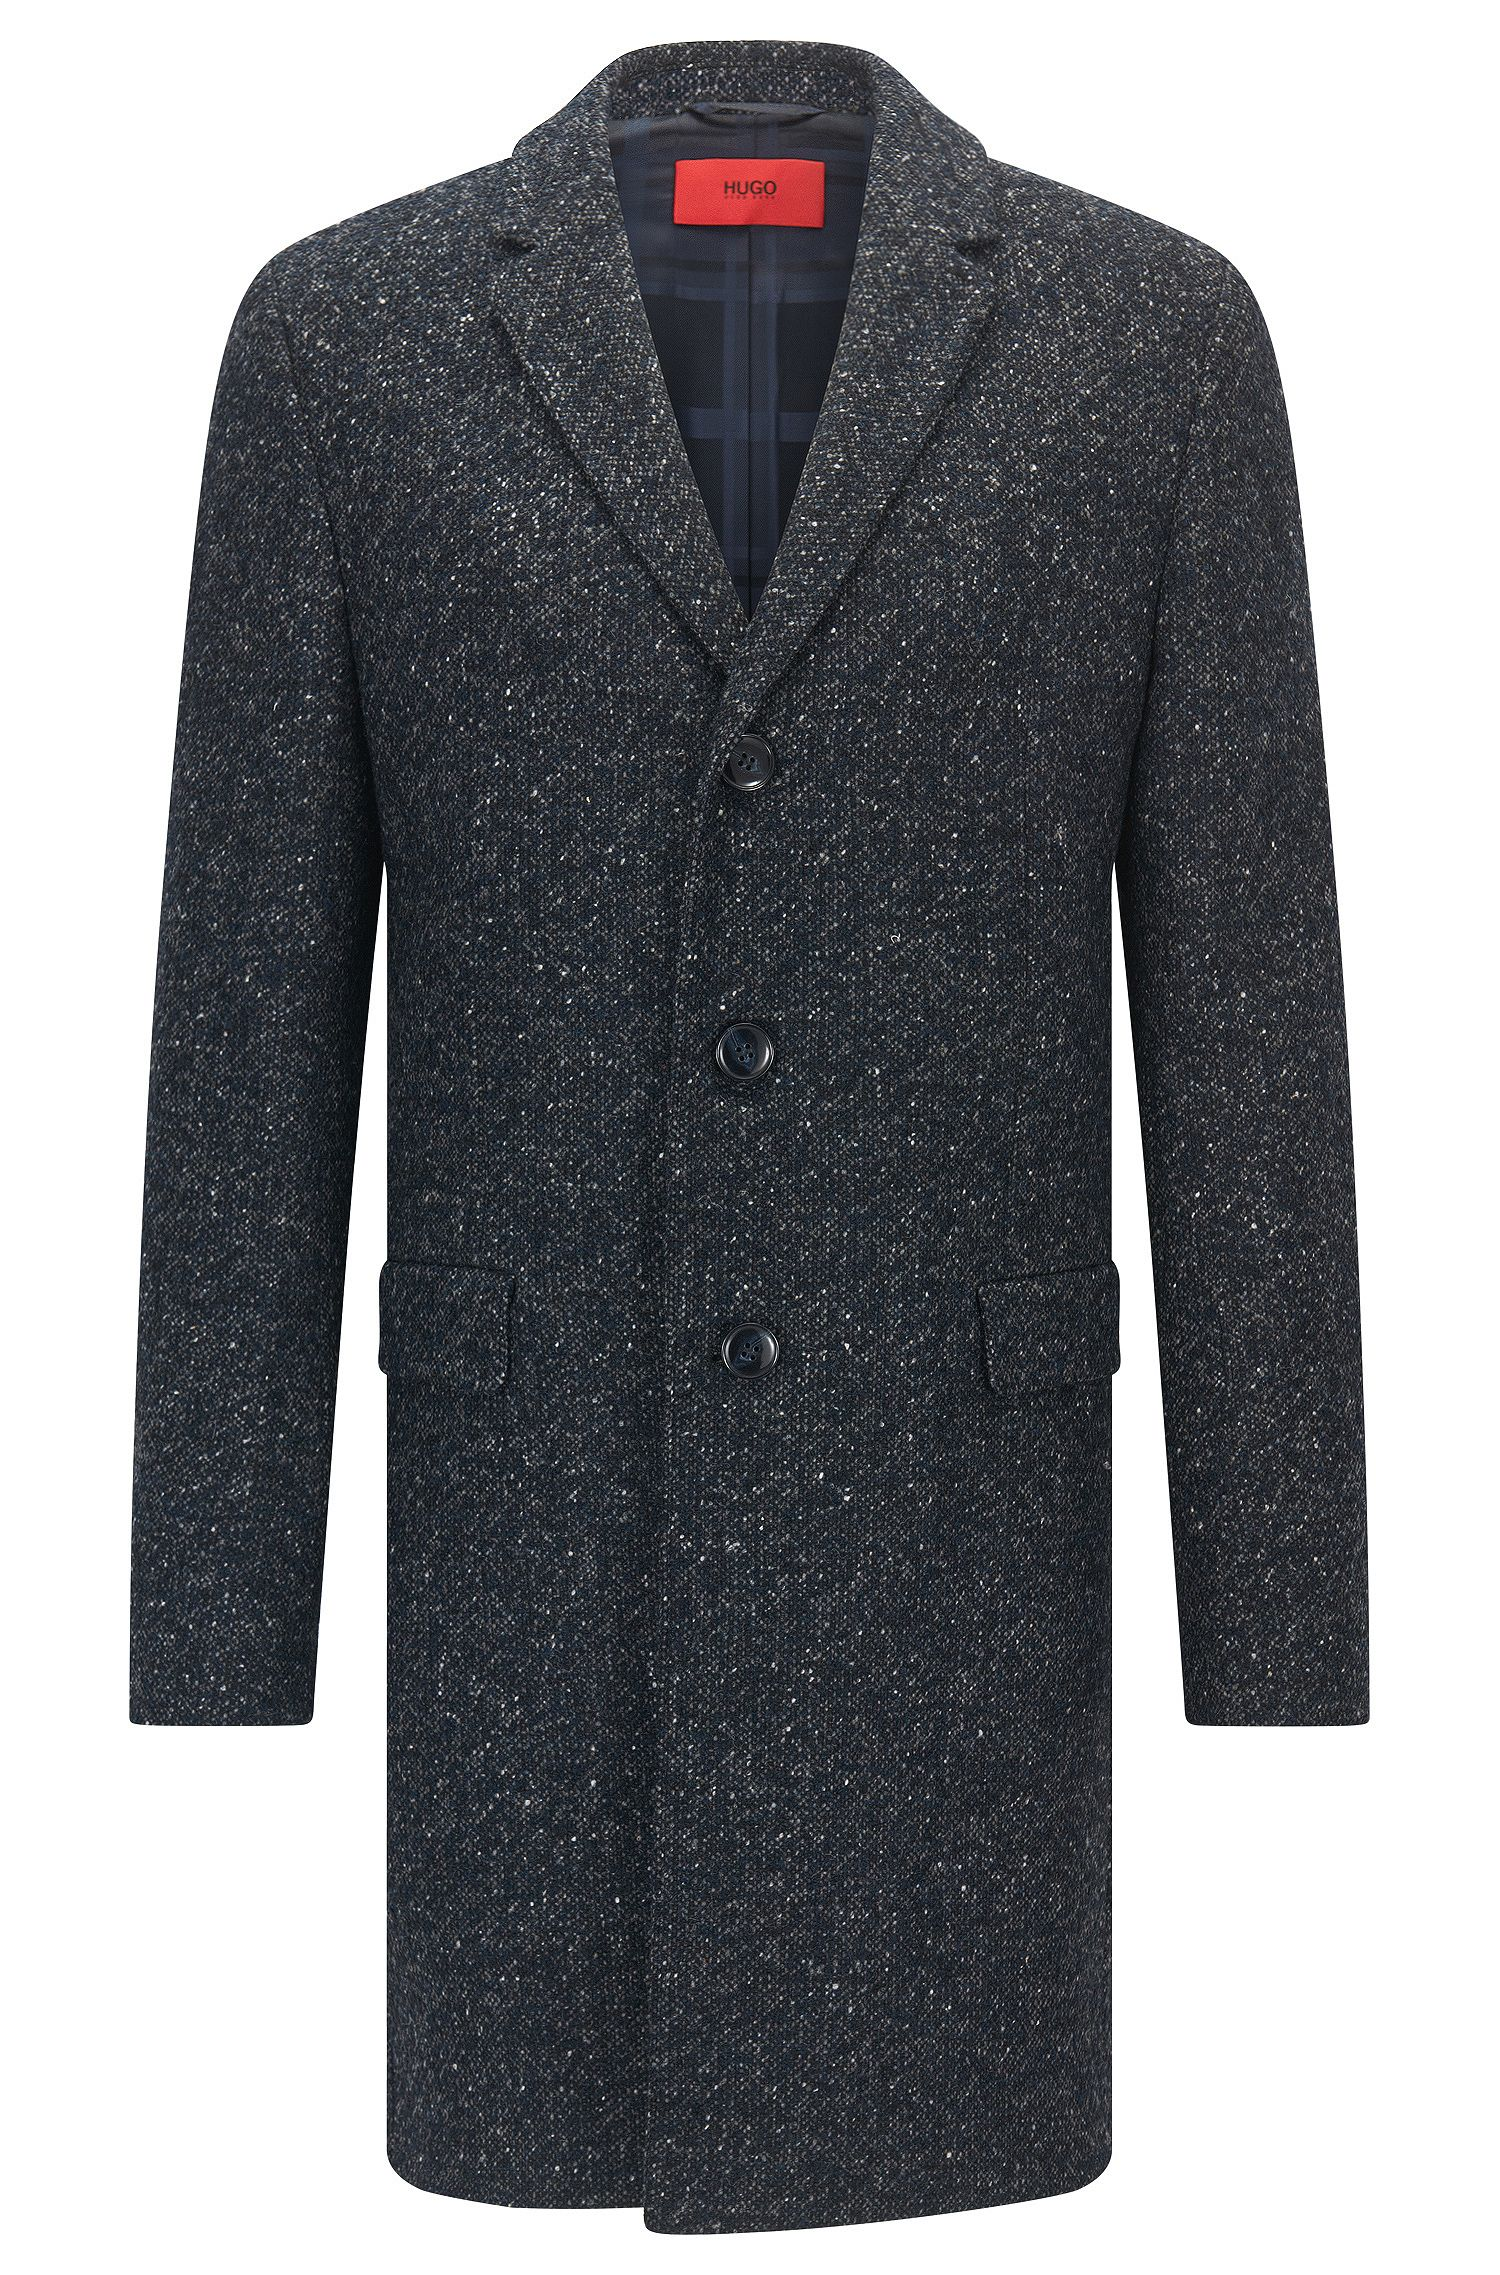 Cappotto slim fit in misto lana screziato